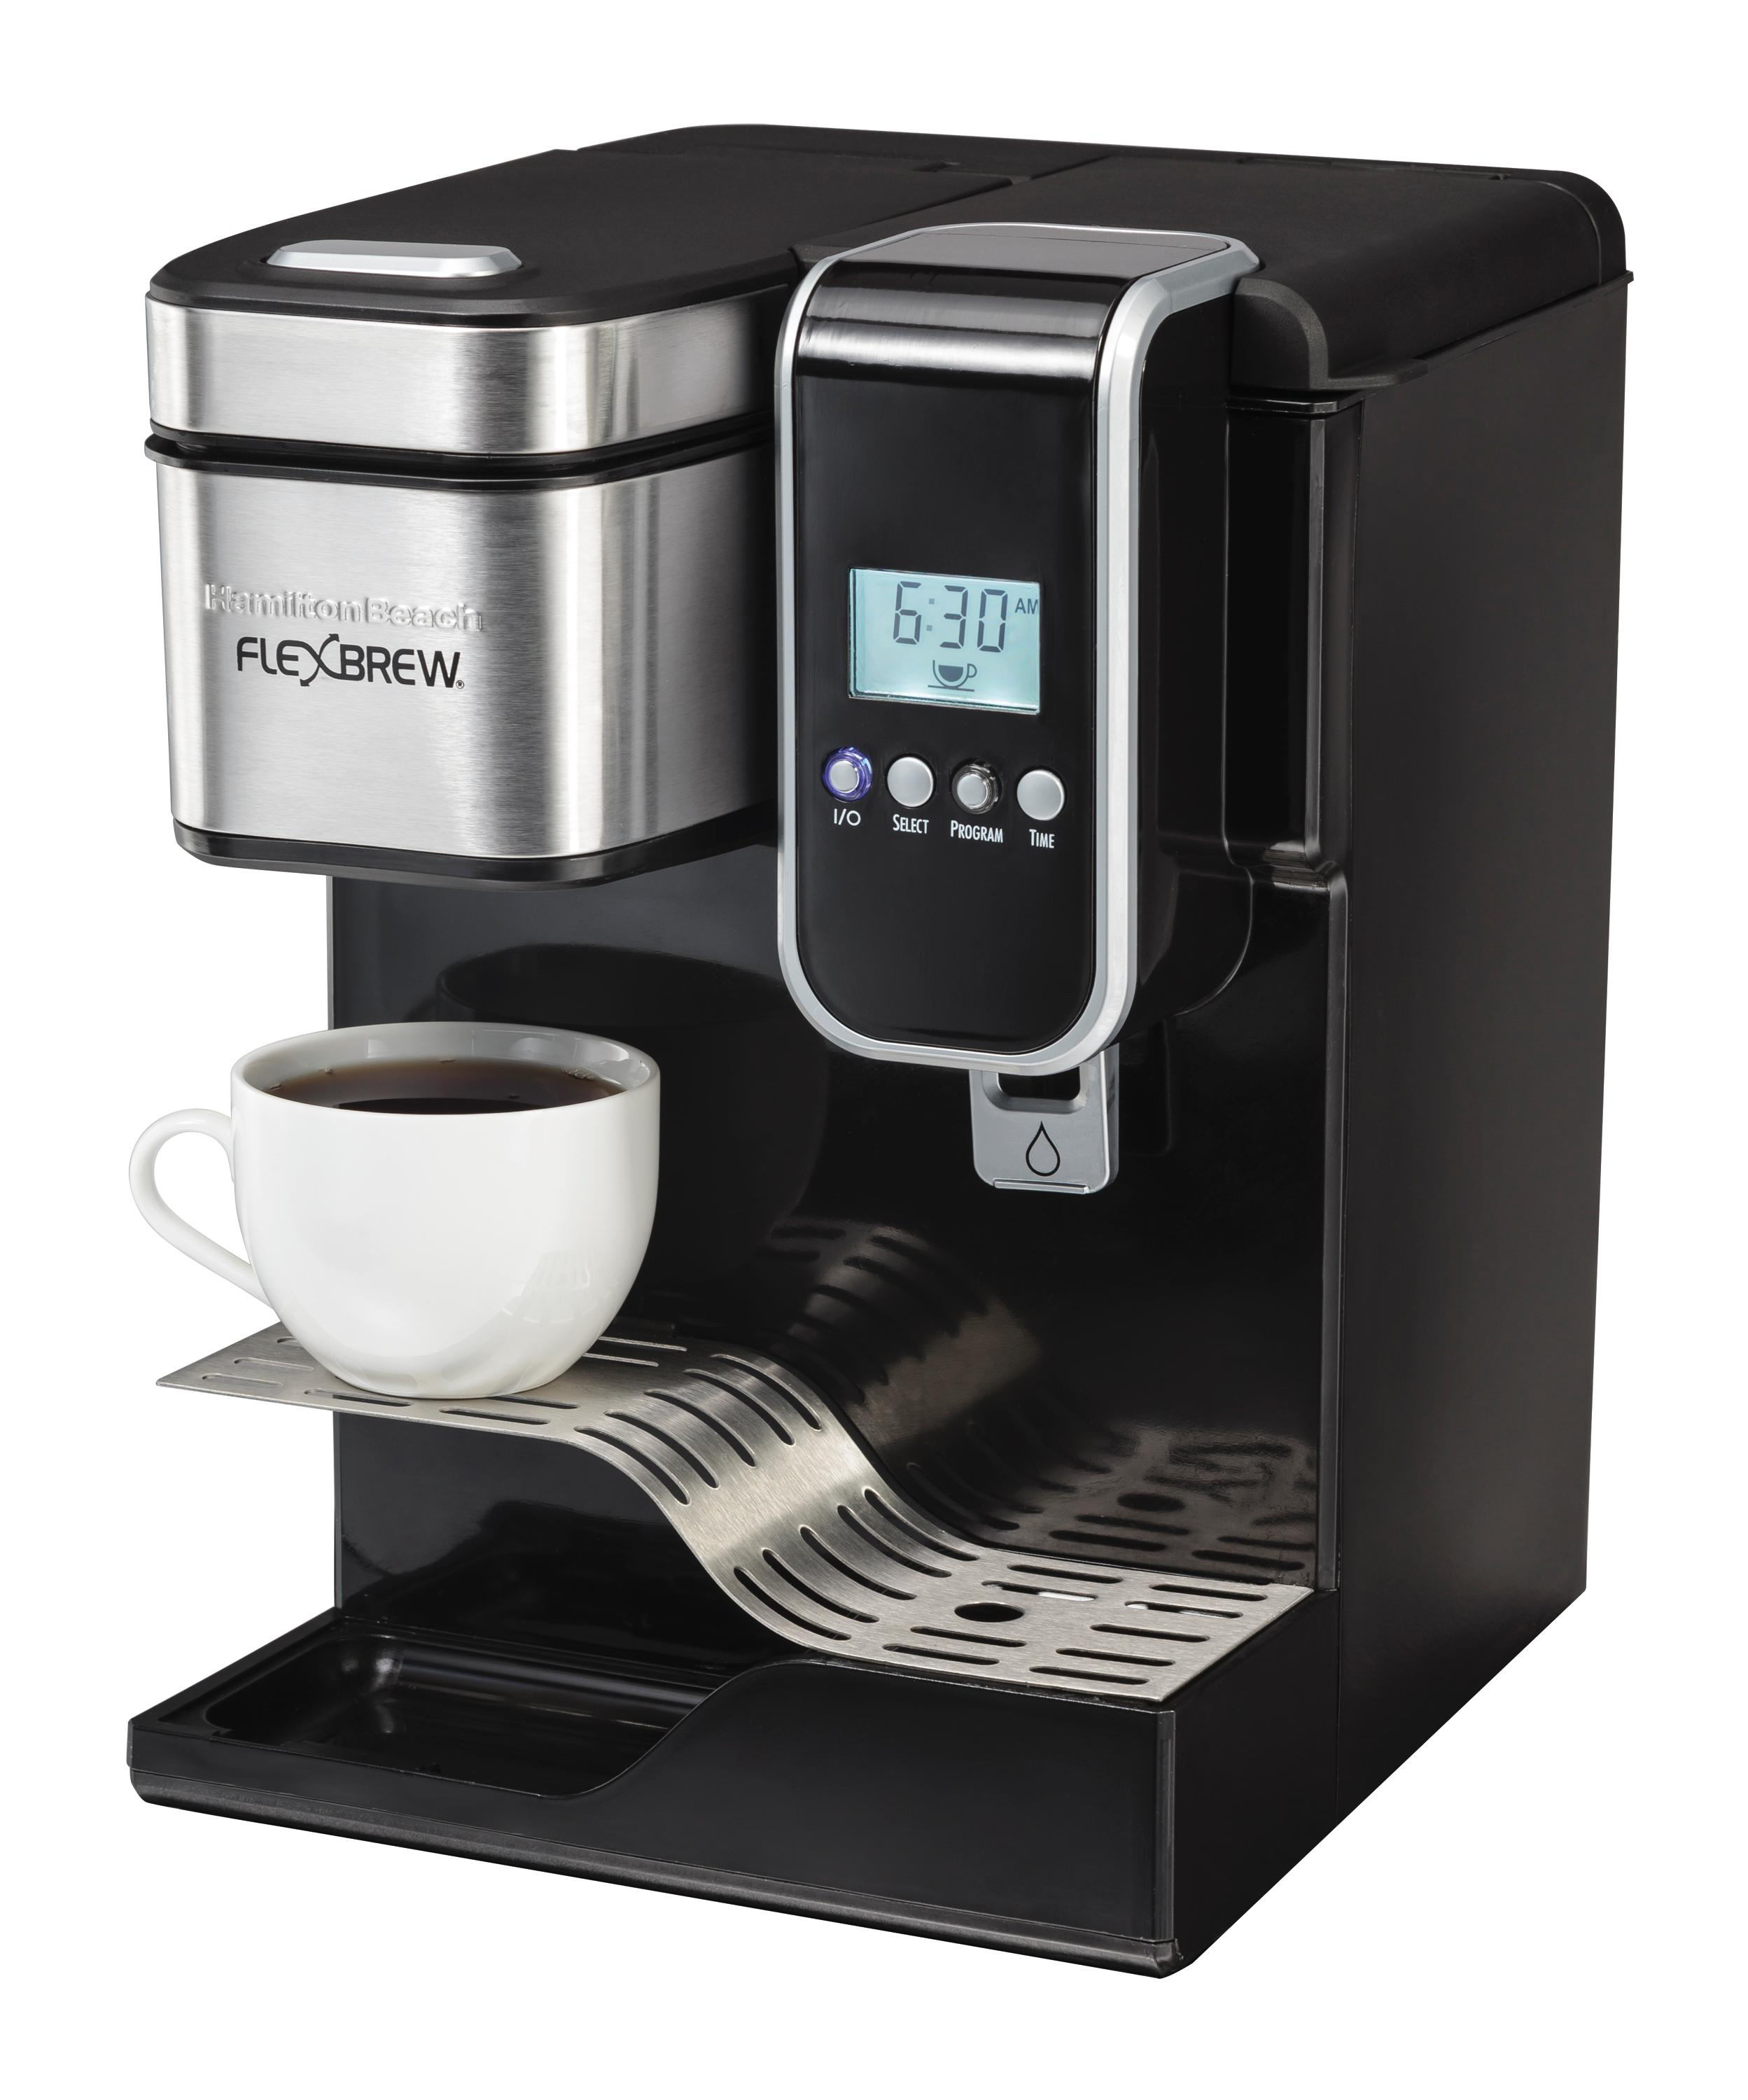 Cuisinart Coffee Maker Hot Water Dispenser : Amazon.com: Hamilton Beach Single-Serve Coffee Maker, Programmable FlexBrew with Hot Water ...